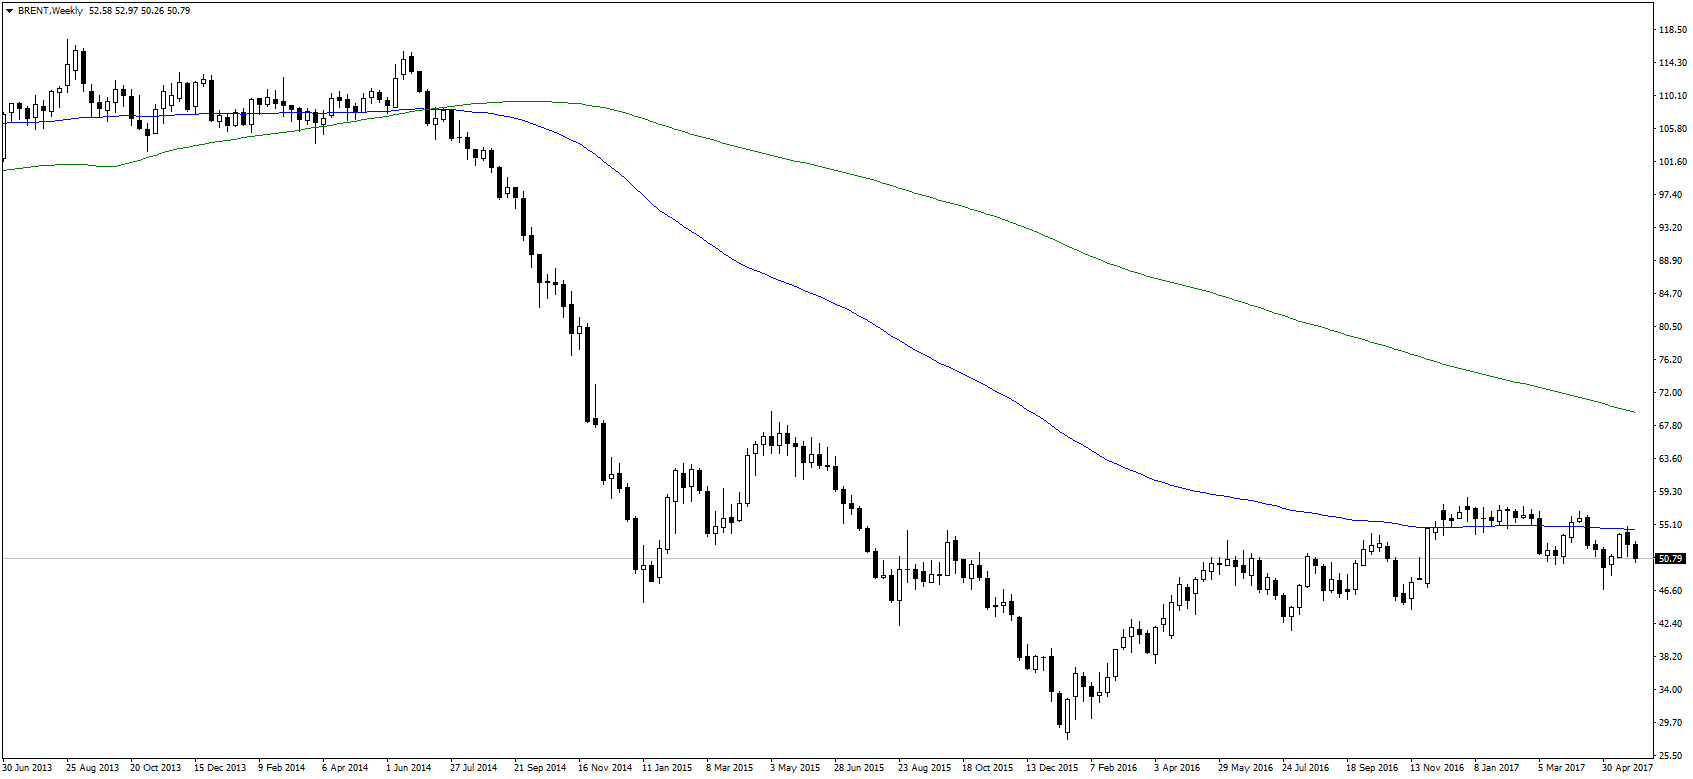 Weekly chart of BRENT crude oil prices